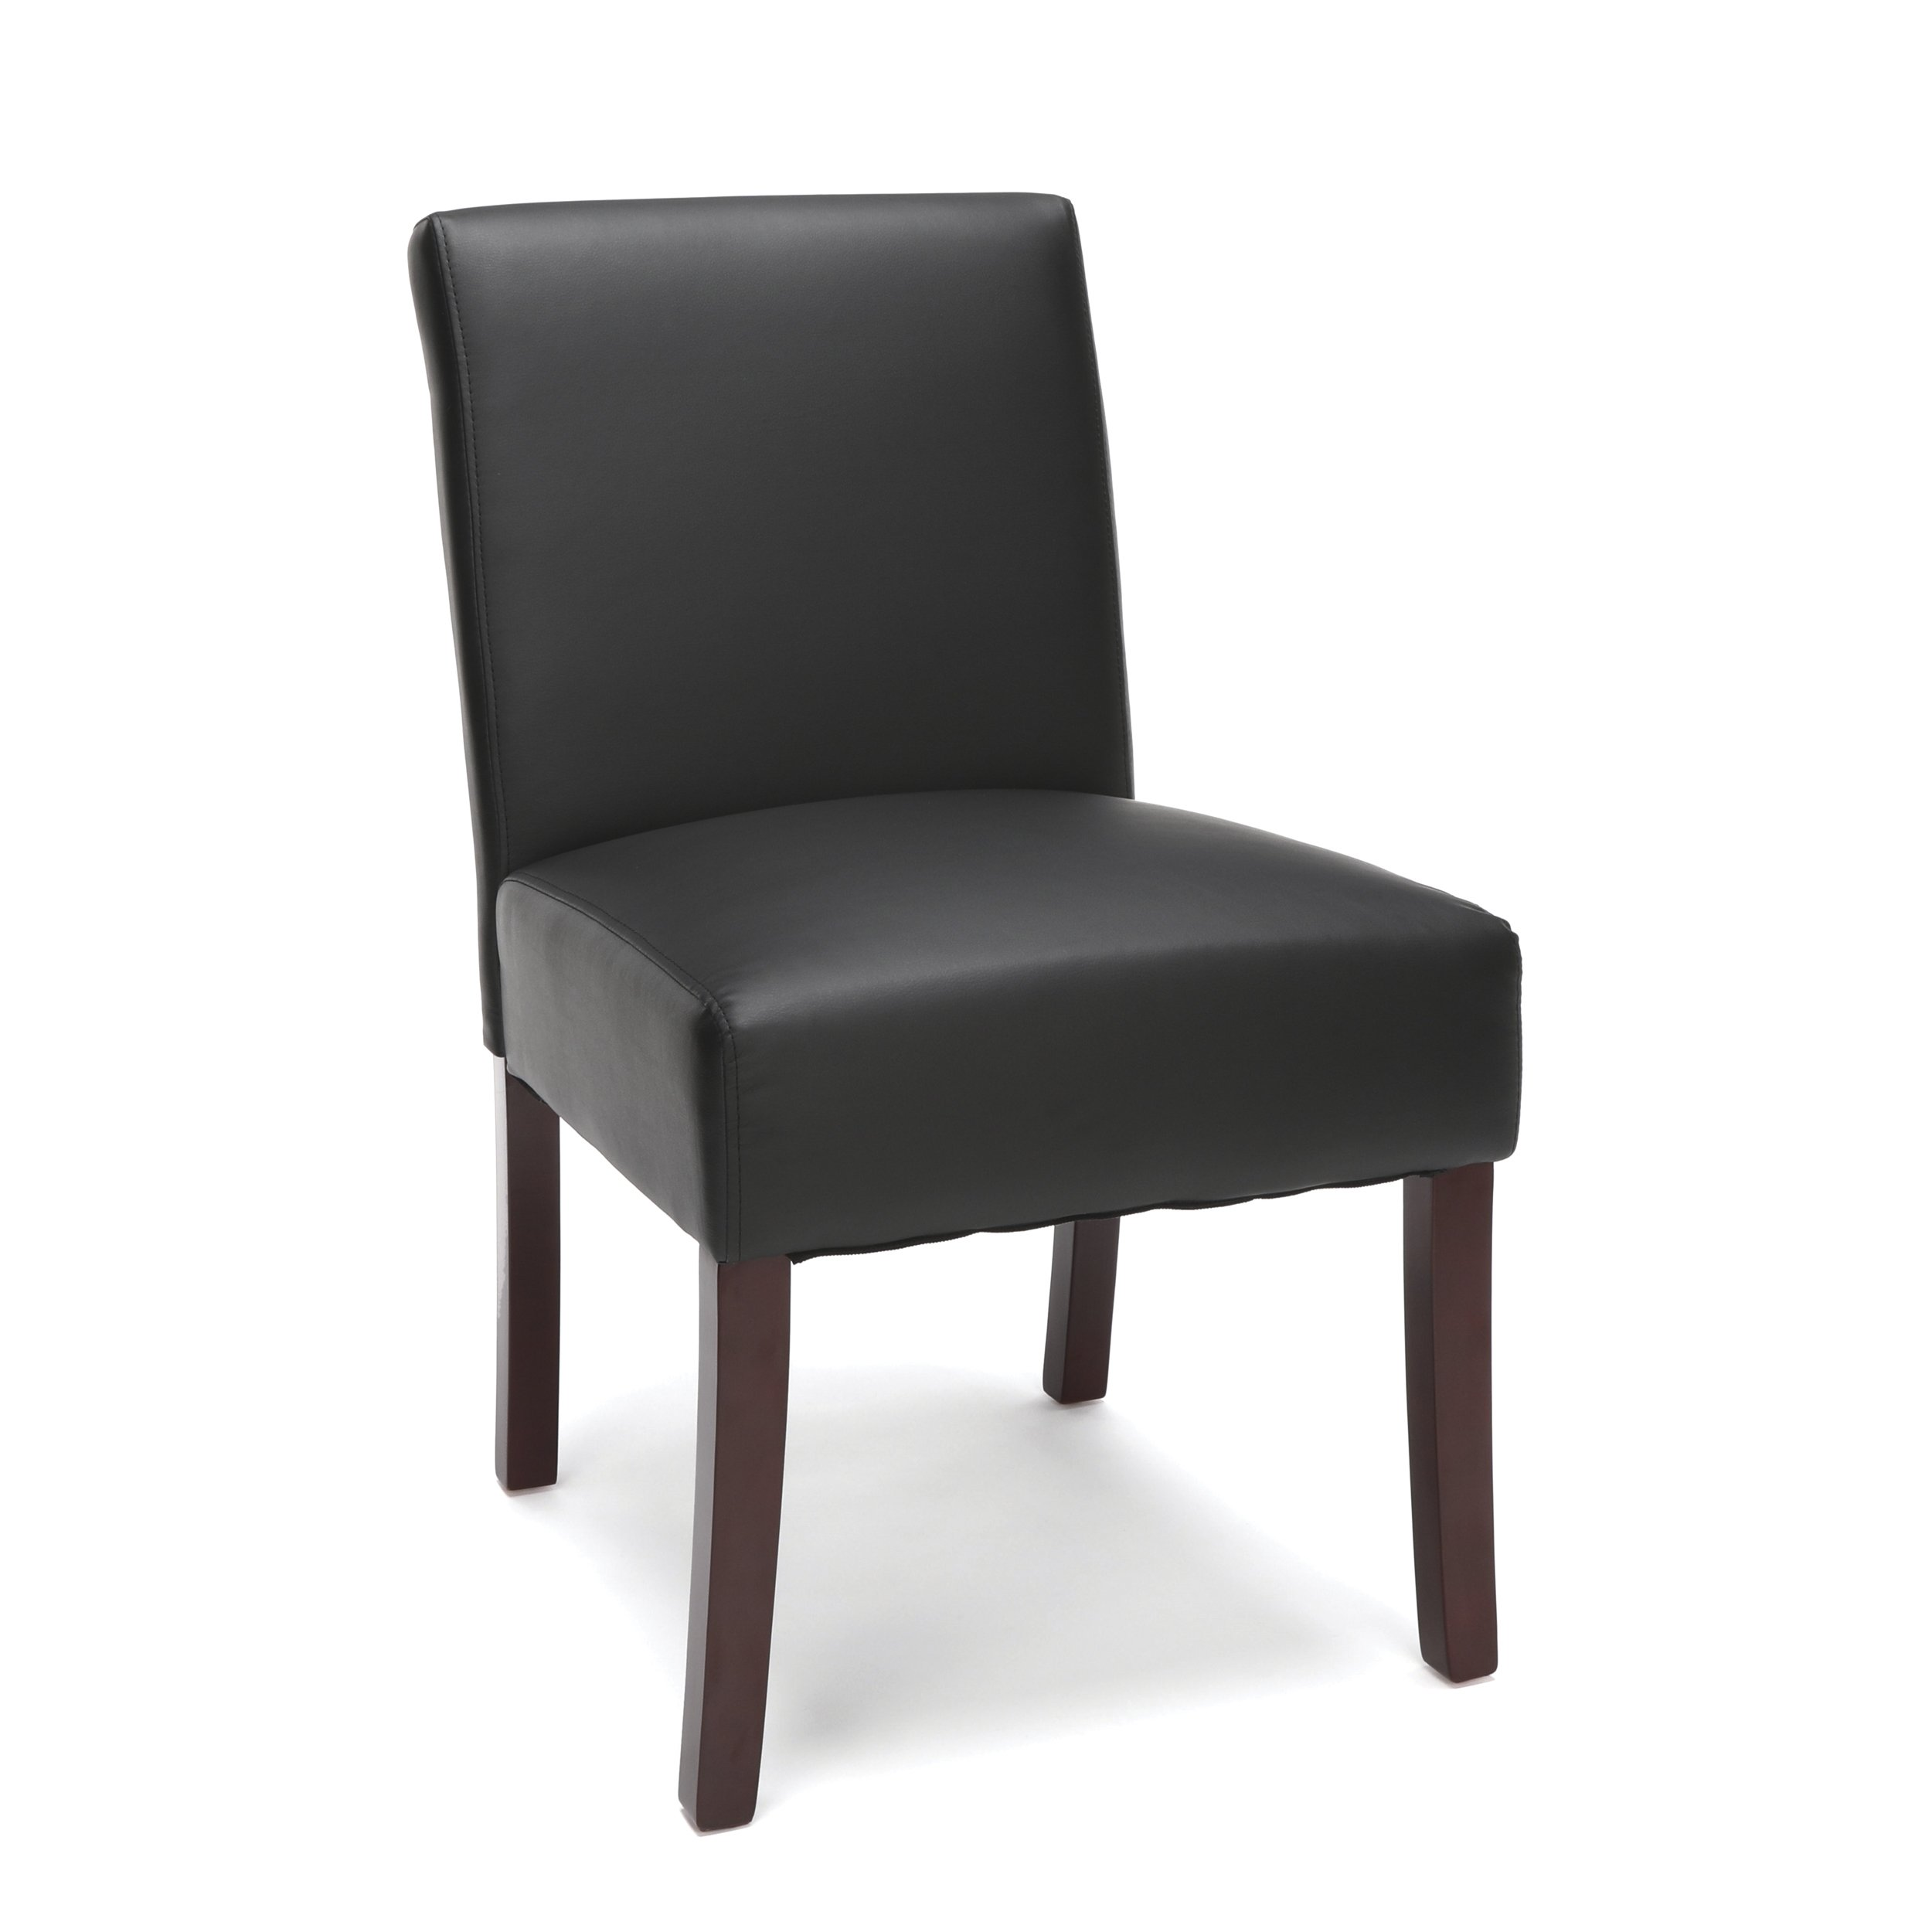 Essentials Executive Guest Chair - Armless Leather Reception Chair, Black (ESS-9020-BLK) by OFM